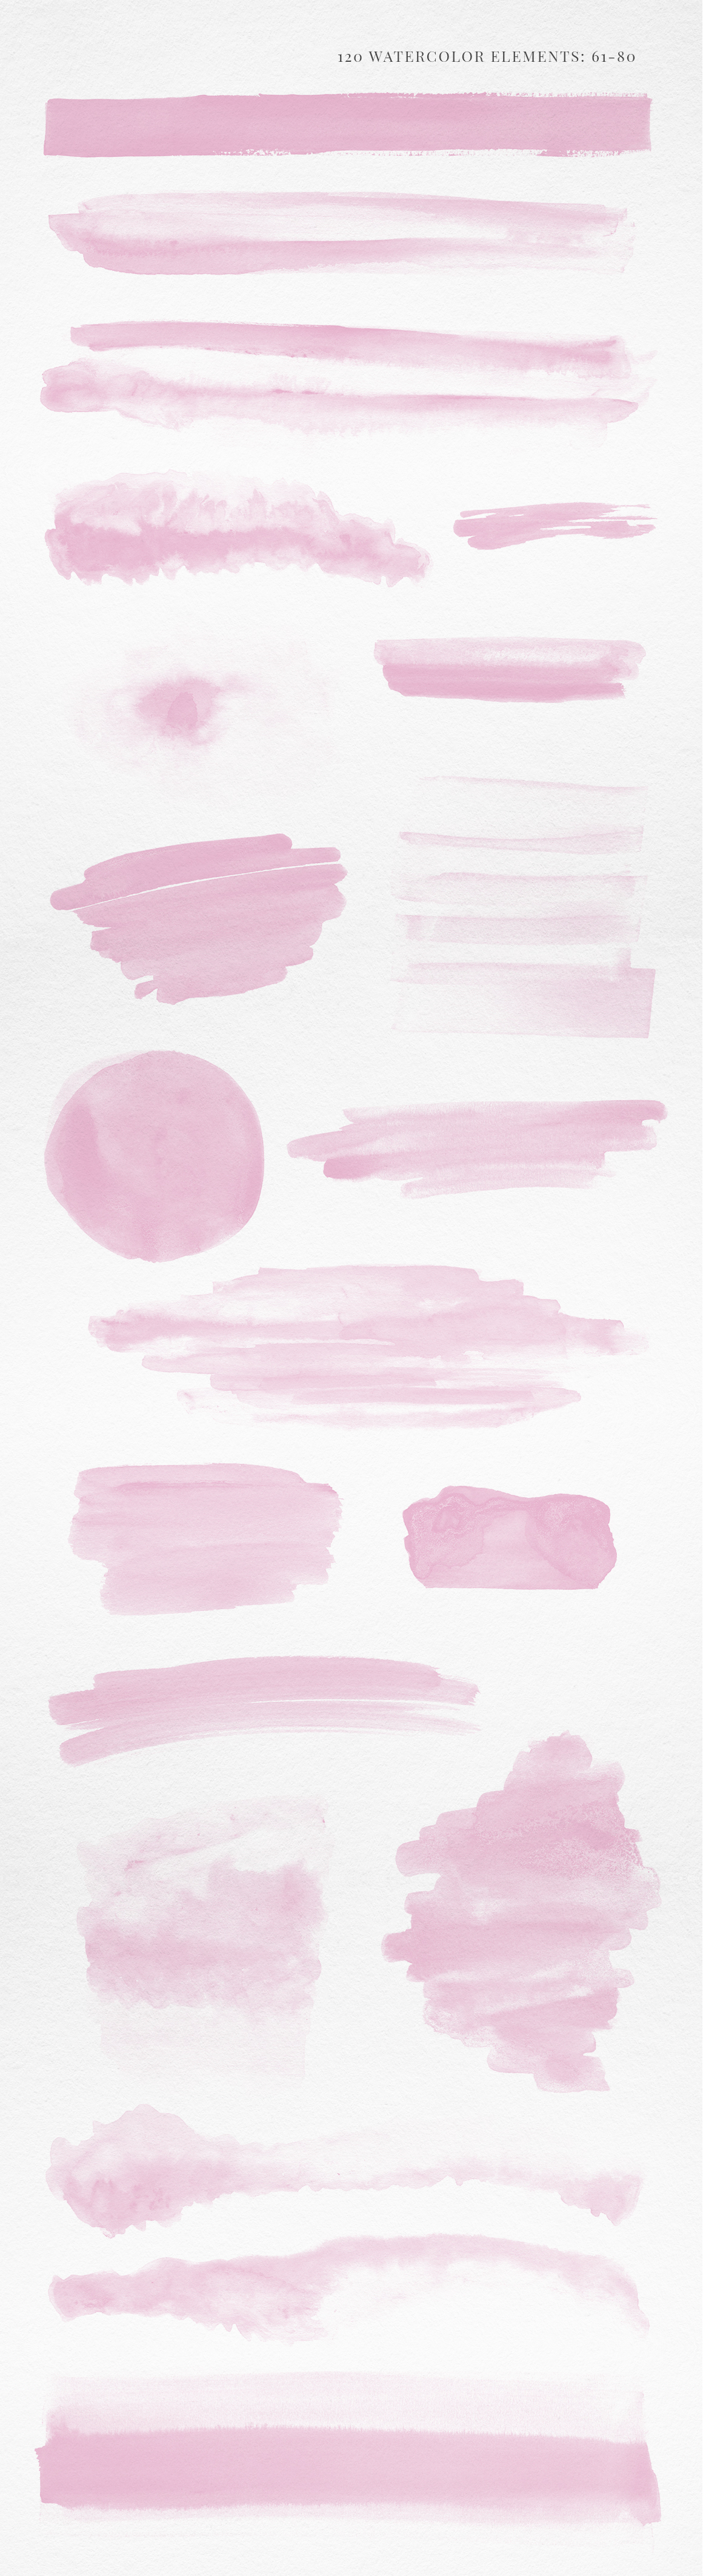 120 Pink Watercolor Texture Elements example image 5